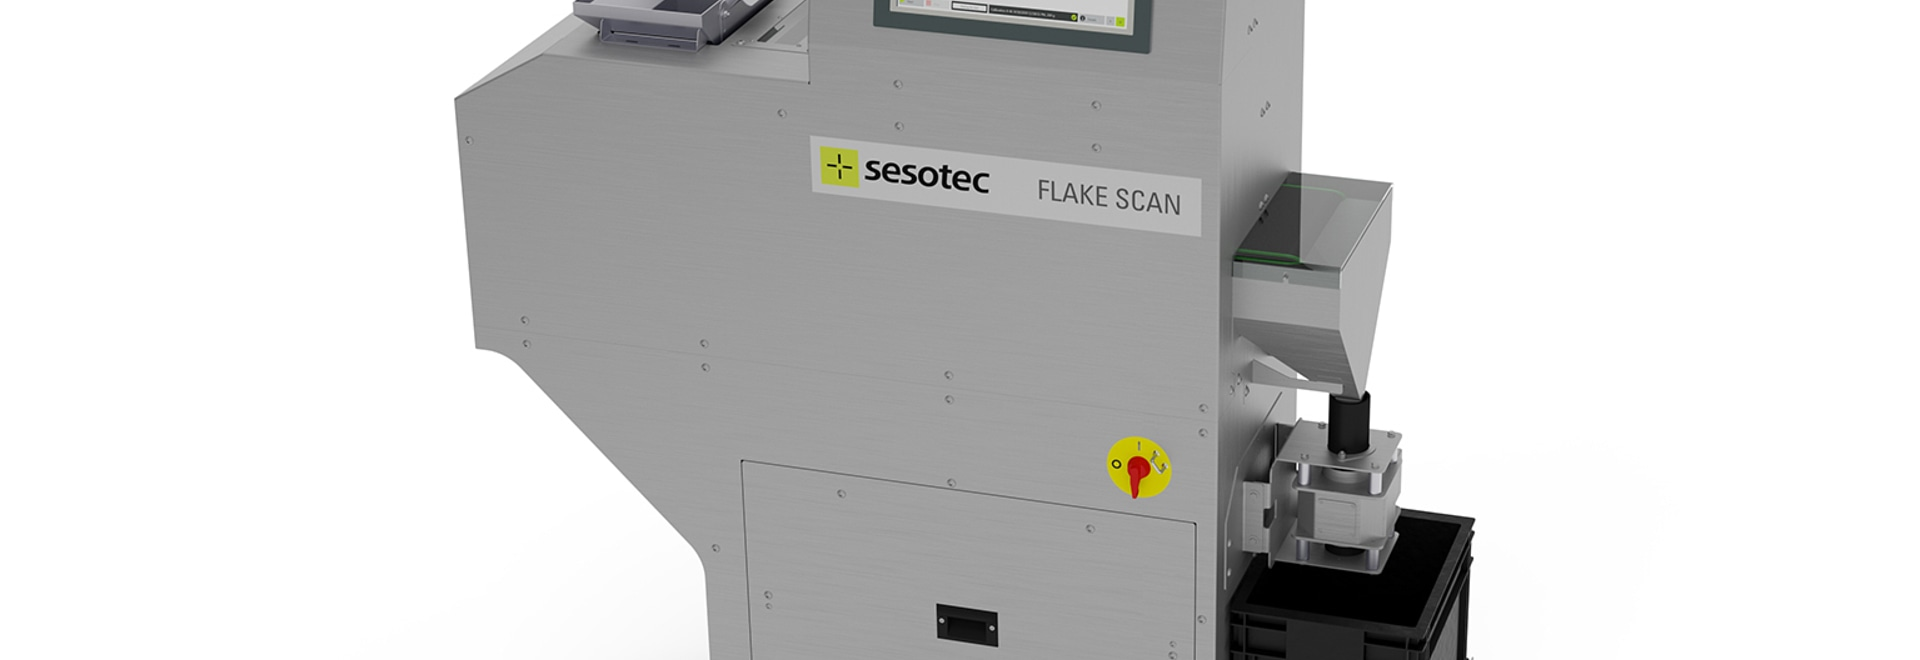 Use FLAKE SCAN by Sesotec to quickly and confidently assess the quality of plastic flakes and regrind. (Photo: Sesotec GmbH)